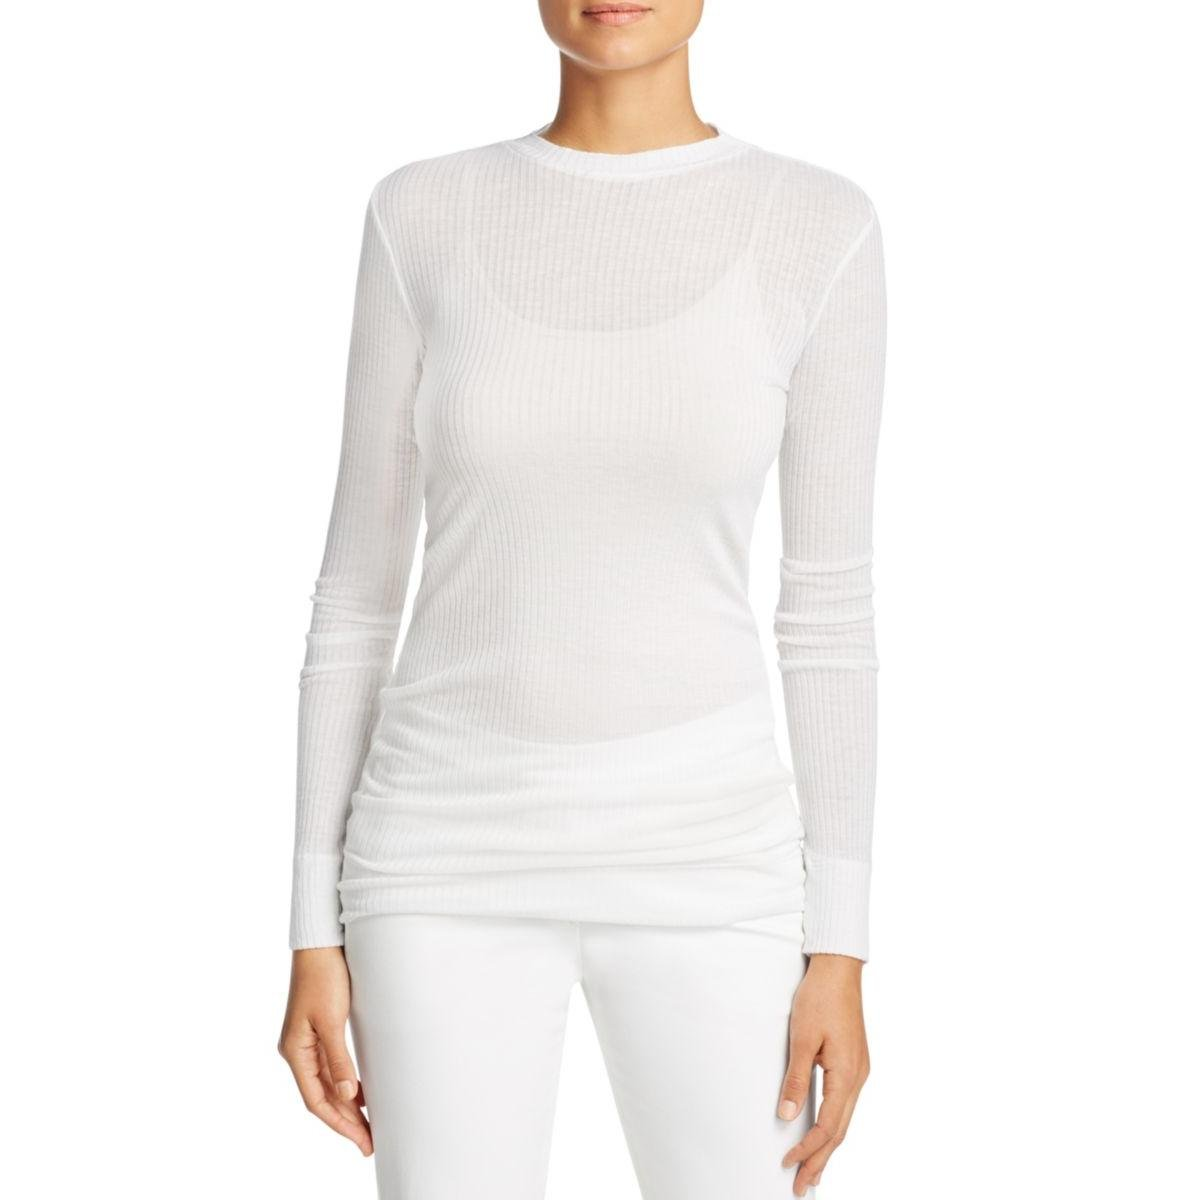 DKNY Womens Petites Ribbed Long Sleeves Pullover Top White S